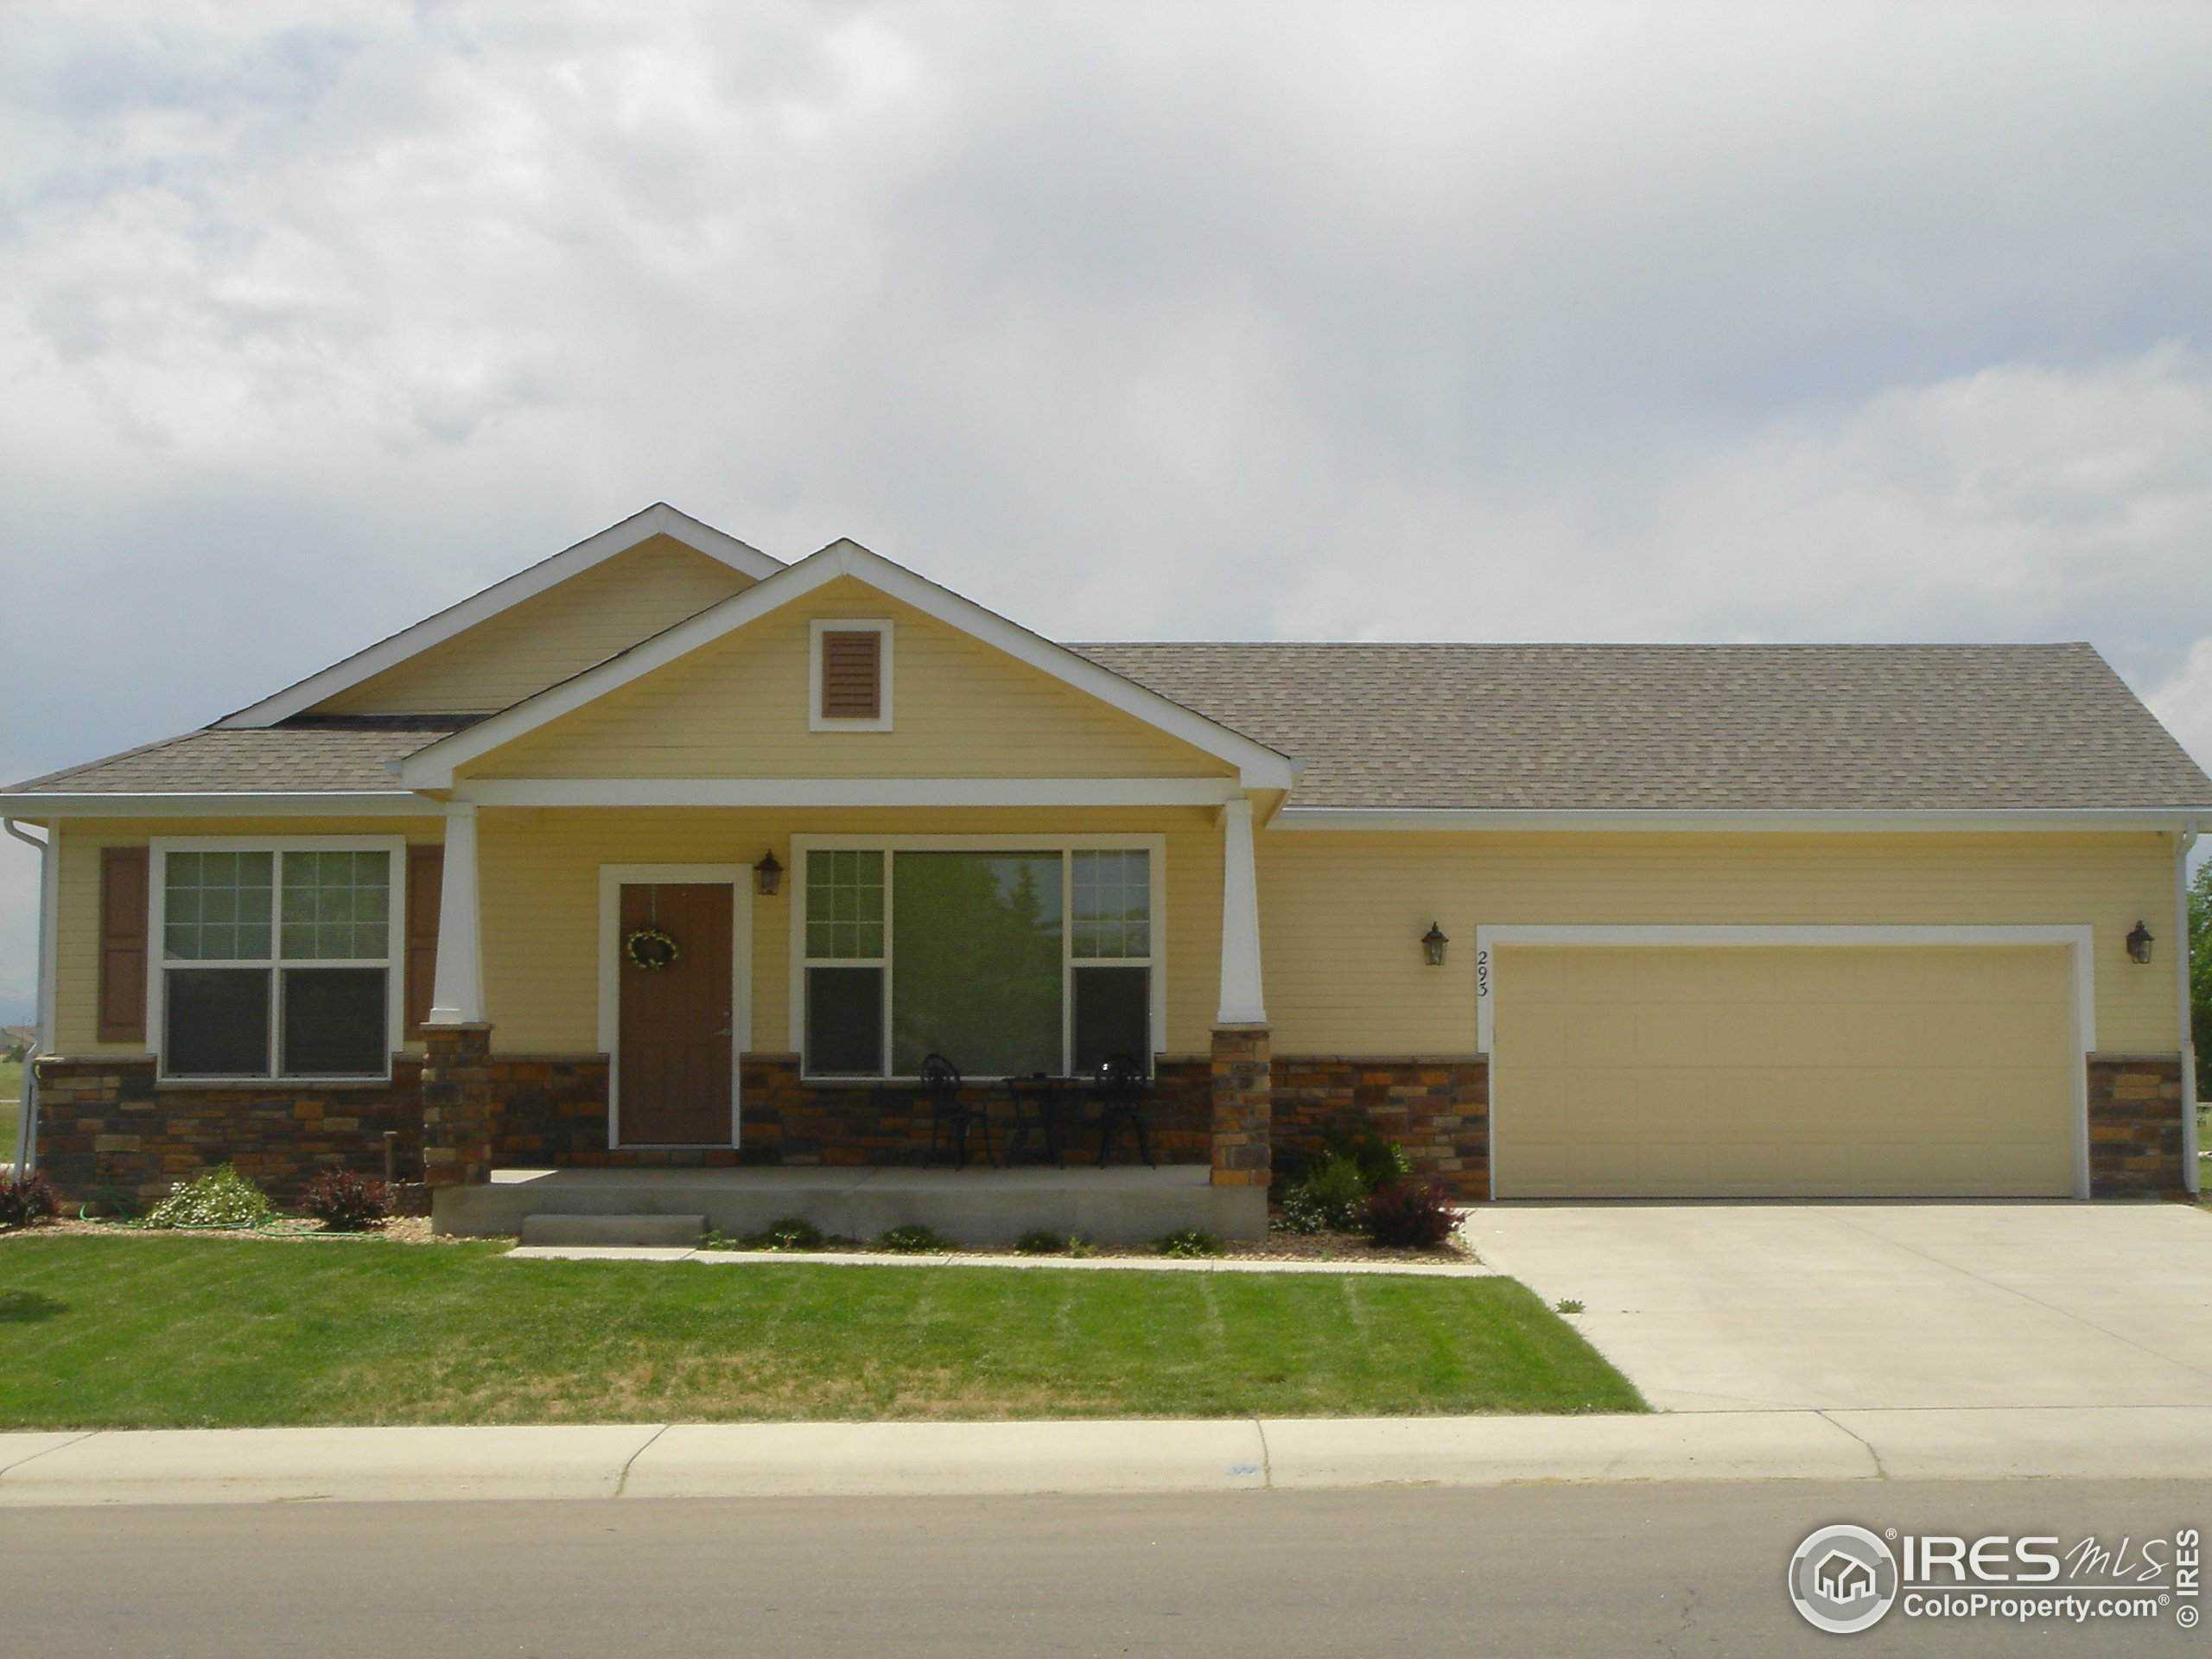 118 Wenatchee St, Lochbuie, CO 80603 (MLS #931694) :: J2 Real Estate Group at Remax Alliance